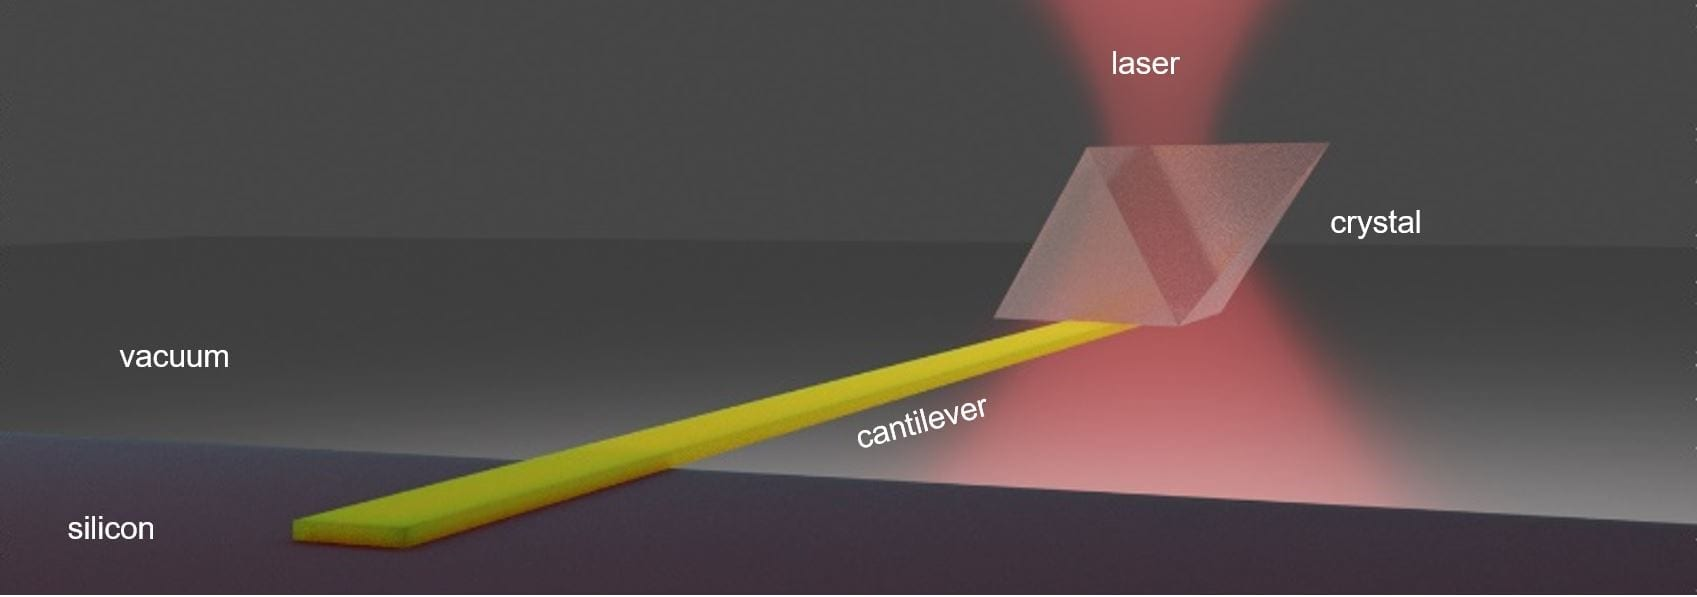 """UW researchers used an infrared laser to cool a solid semiconductor material — labeled as """"cantilever"""" — by at least 20 degrees C, or 36 F, below room temperature.Anupum Pant"""